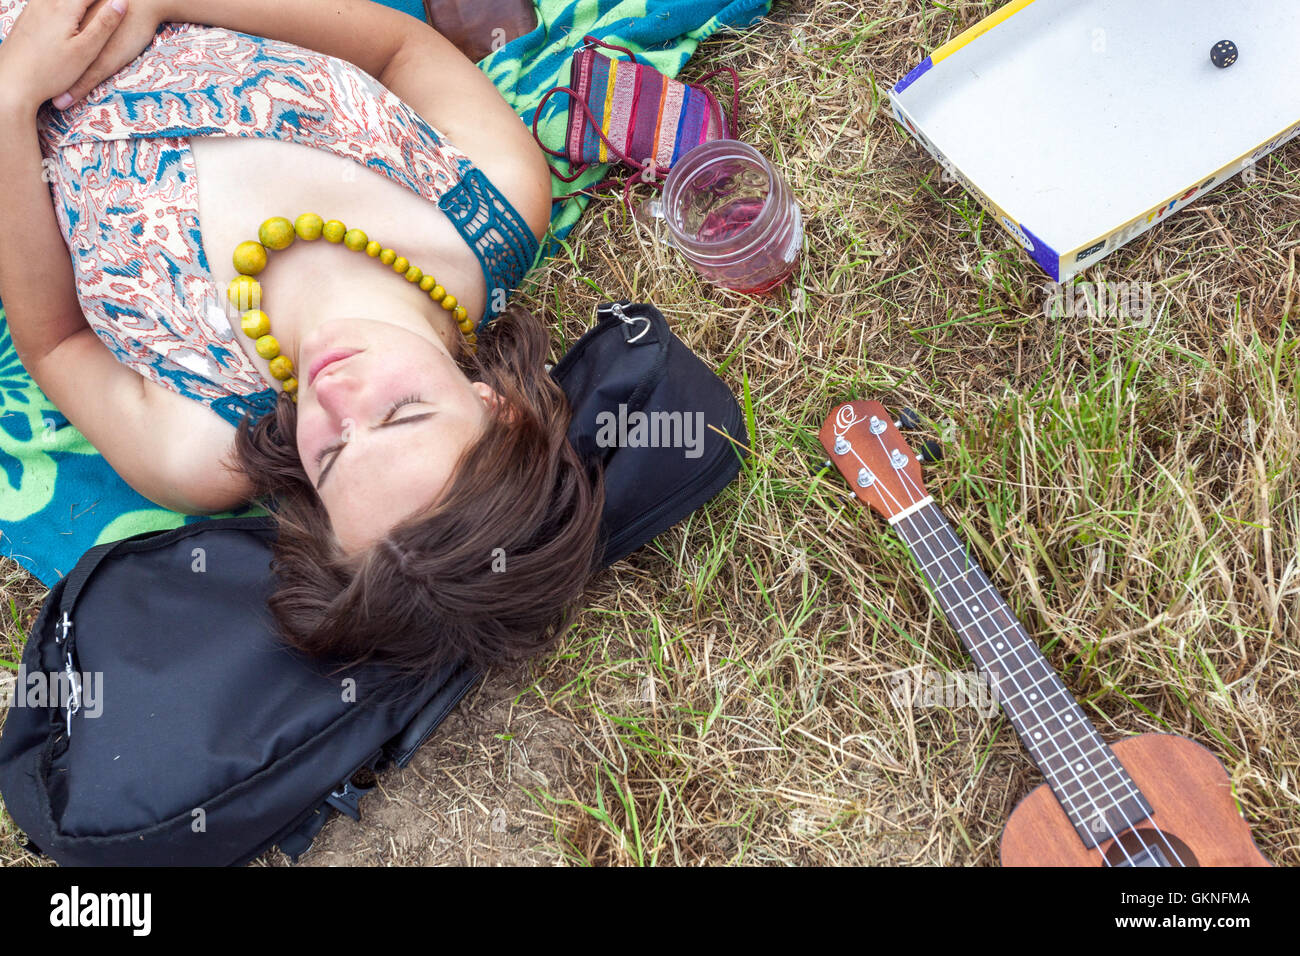 Girl with green beads on her neck lying on a summer meadow, Czech Republic - Stock Image